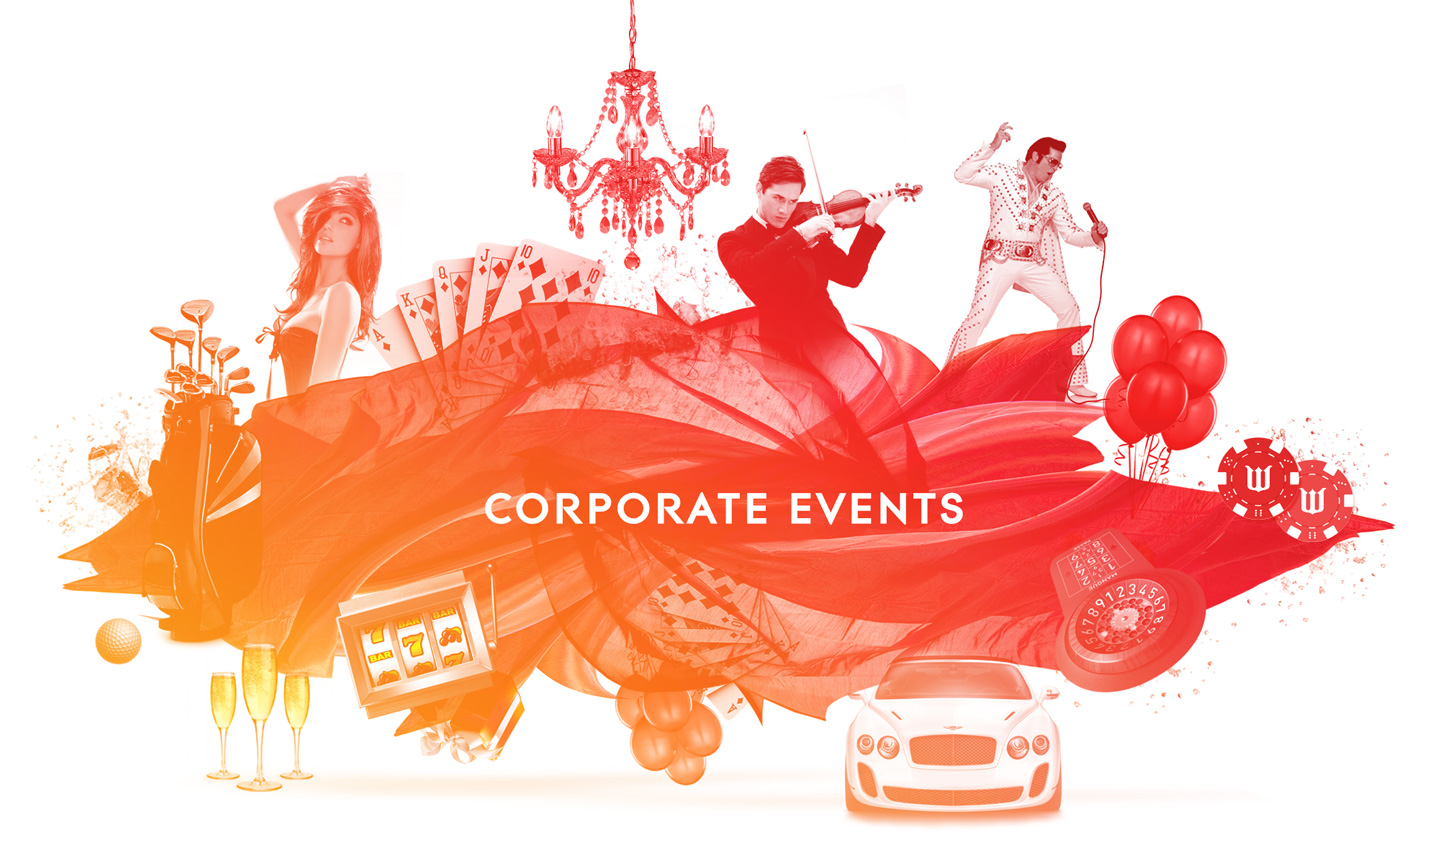 Corporate event entertainment & planning by Wildcard